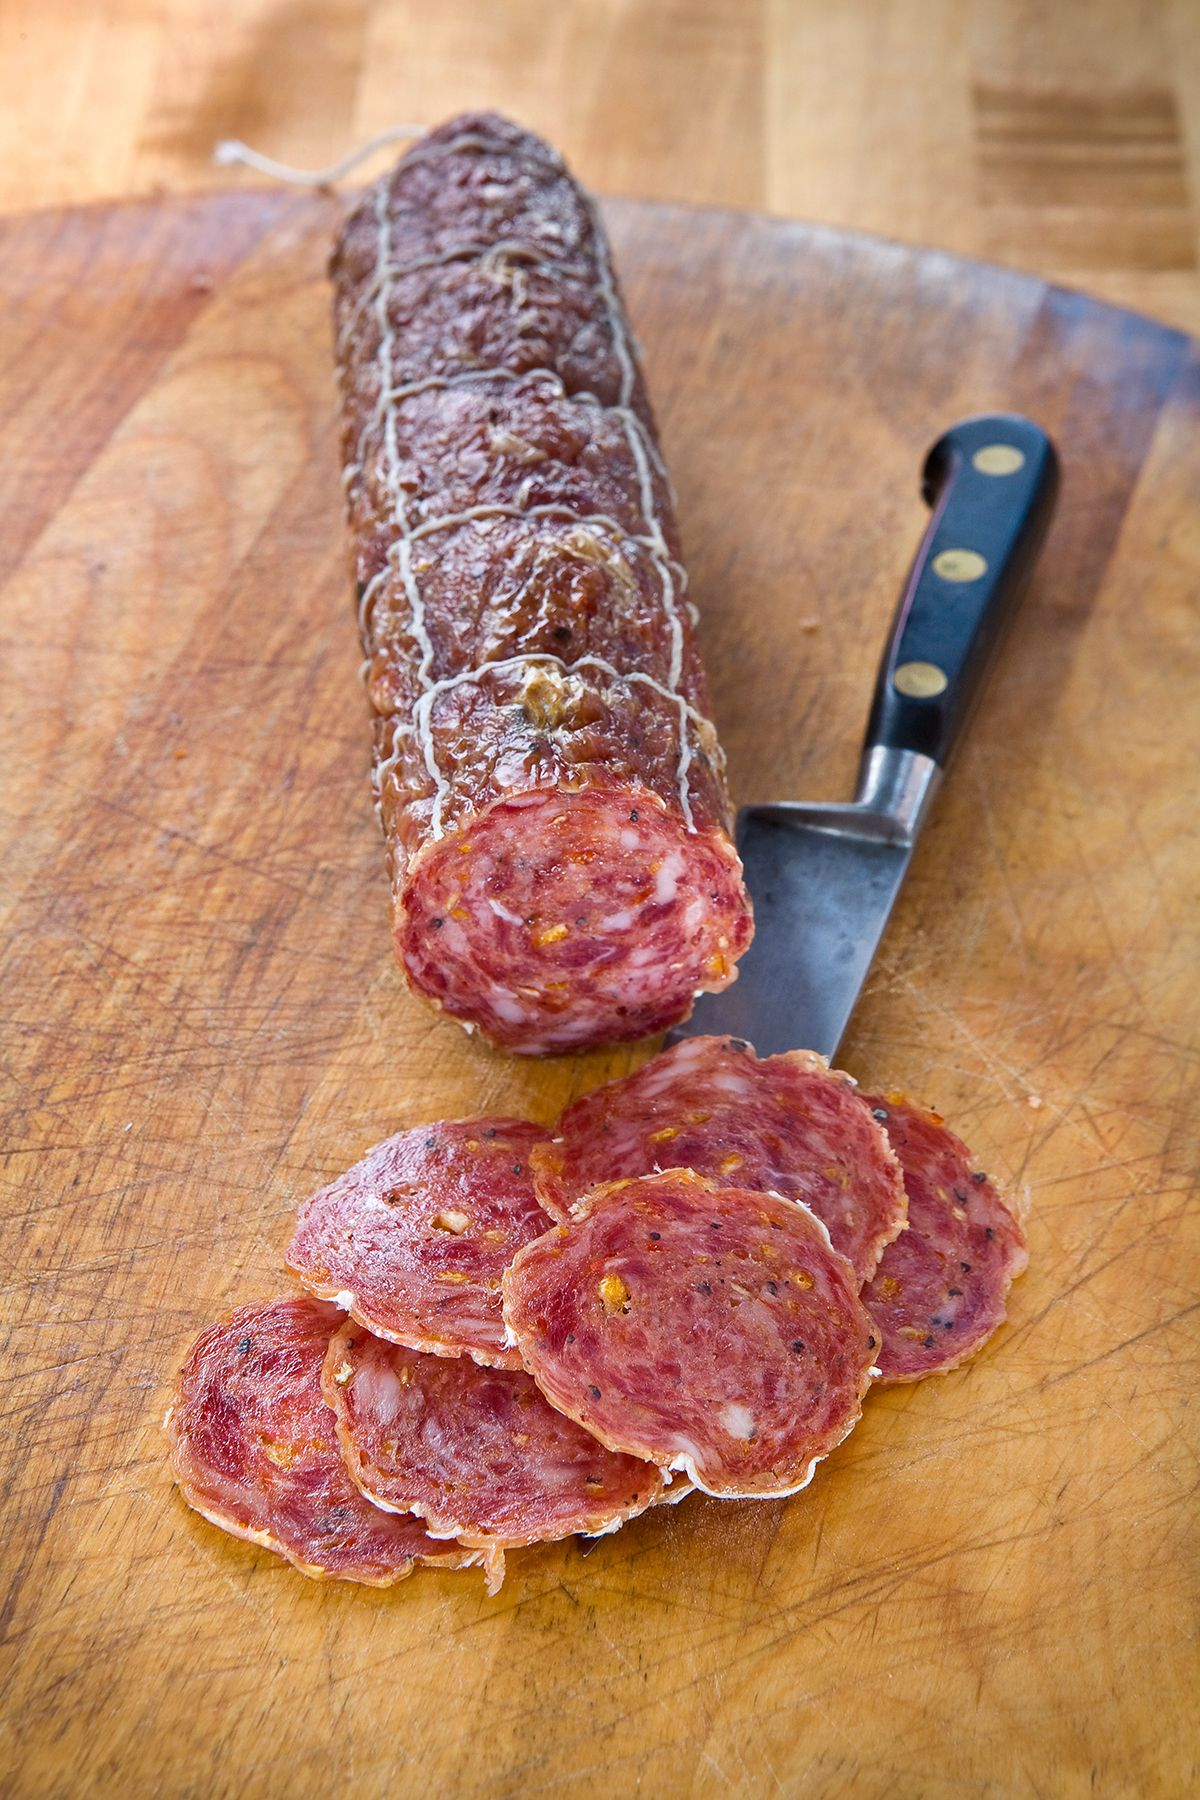 Agrumi Salami Salumi Artisan Cured Meats Seattle Wa A Recent Creation Cured With Citrus An Cured Meat Recipes Smoked Food Recipes Sausage Making Recipes